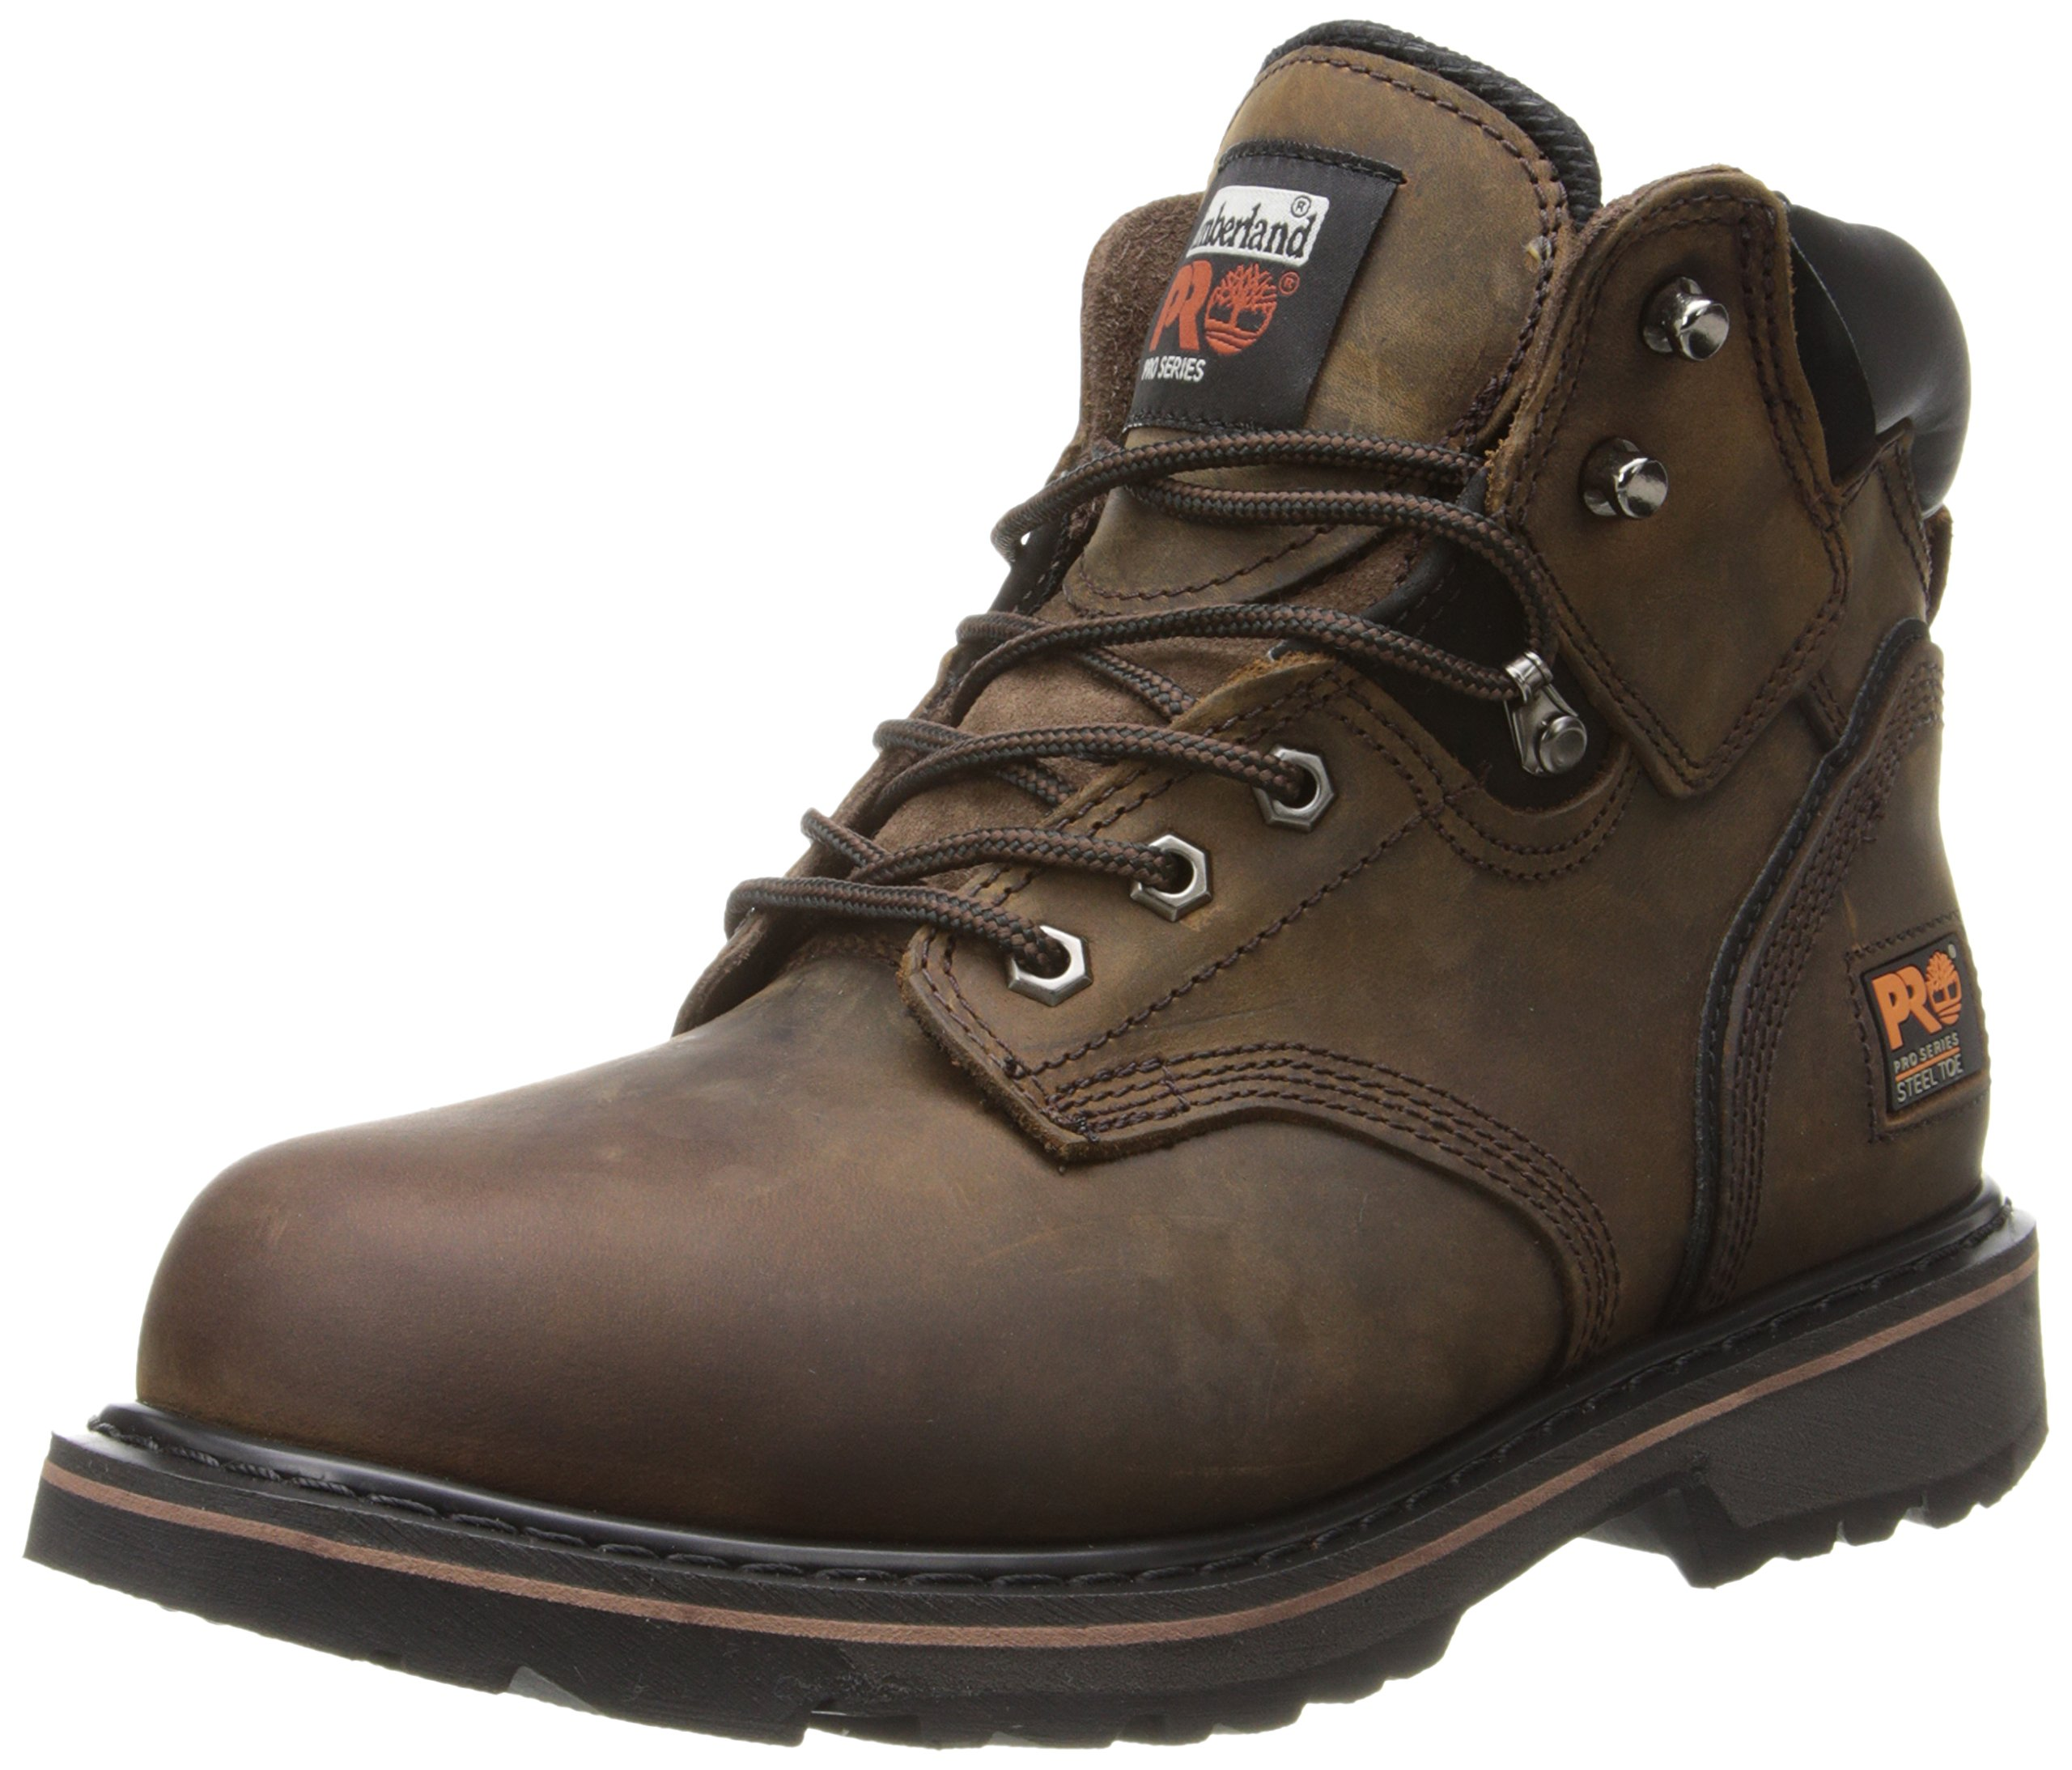 Timberland PRO Men's Pitboss 6'' Steel-Toe Boot, Brown , 9.5 EE - Wide